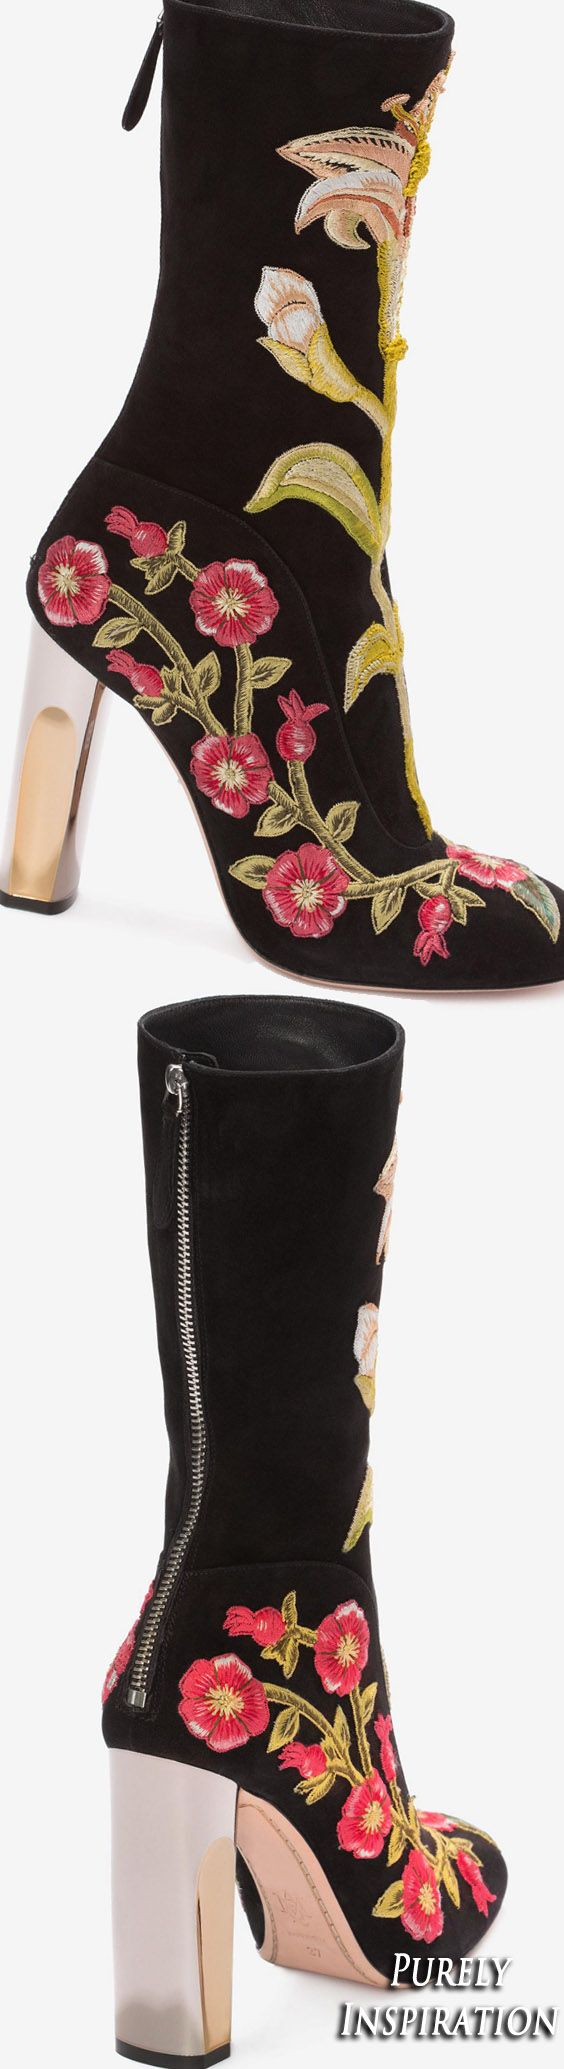 Alexander McQueen embroidered boot | Purely Inspiration